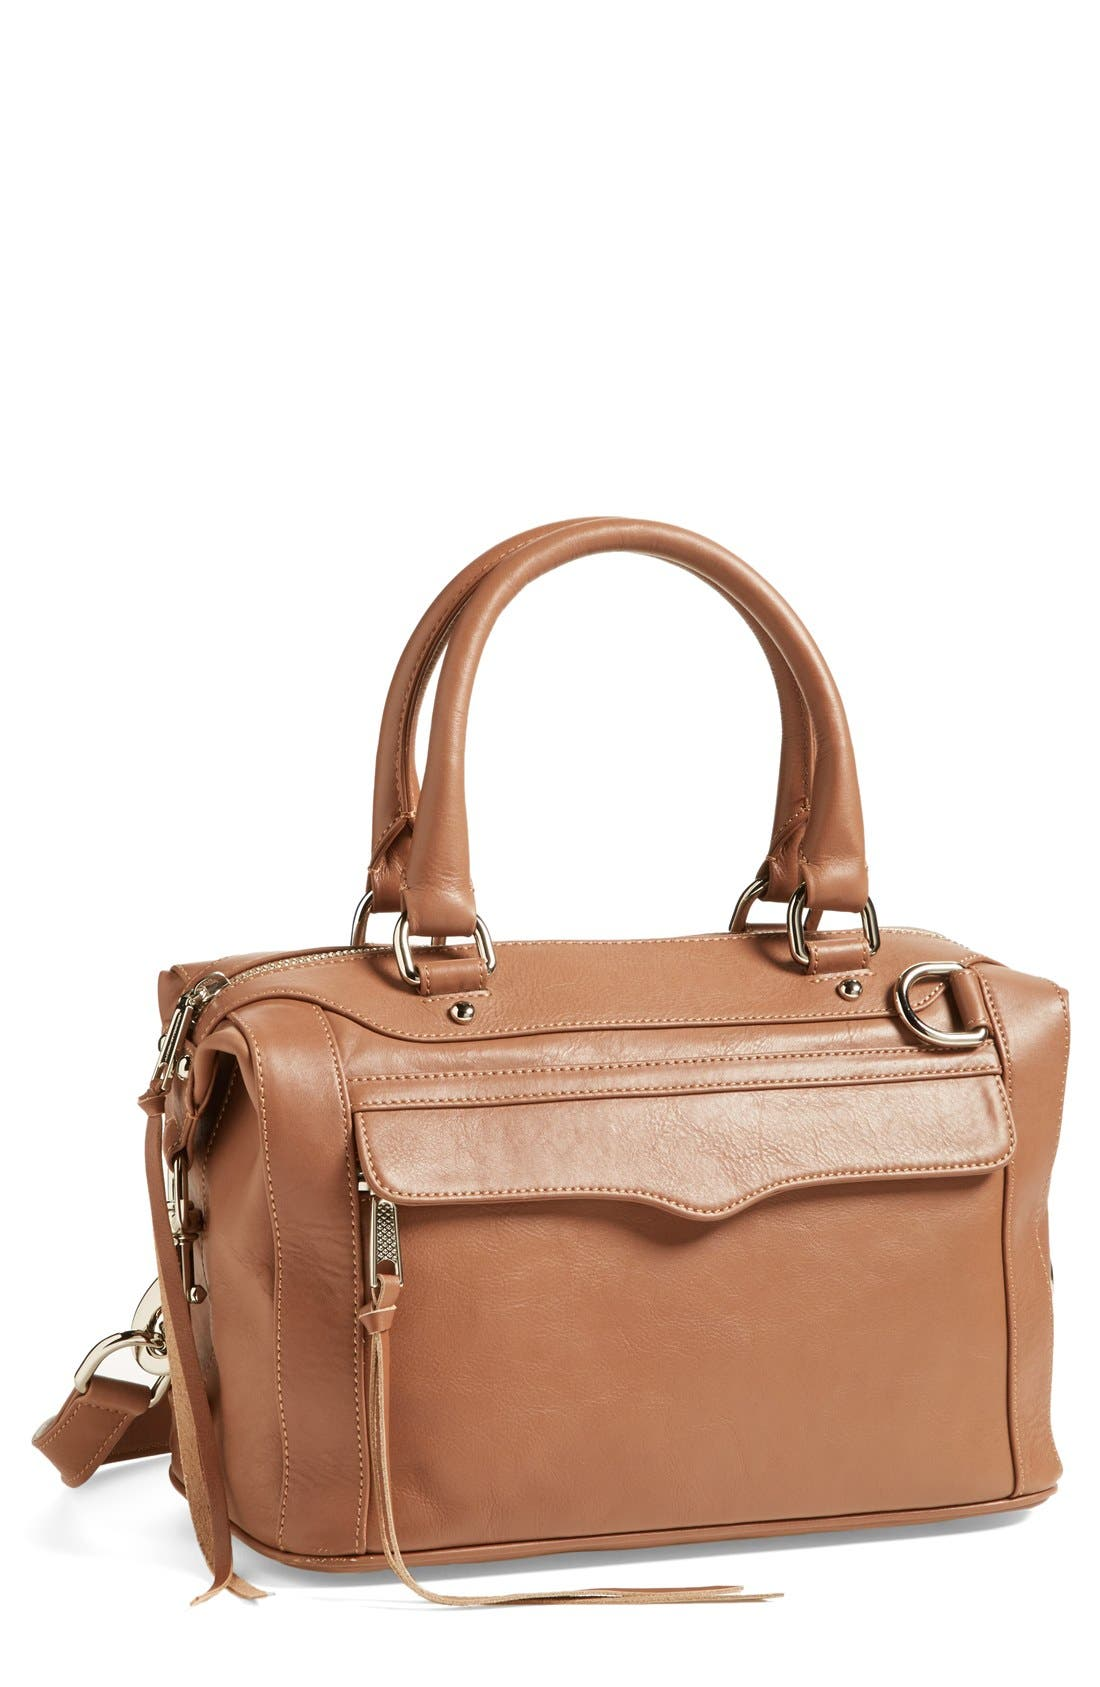 Main Image - Rebecca Minkoff 'MAB - Mini' Leather Satchel